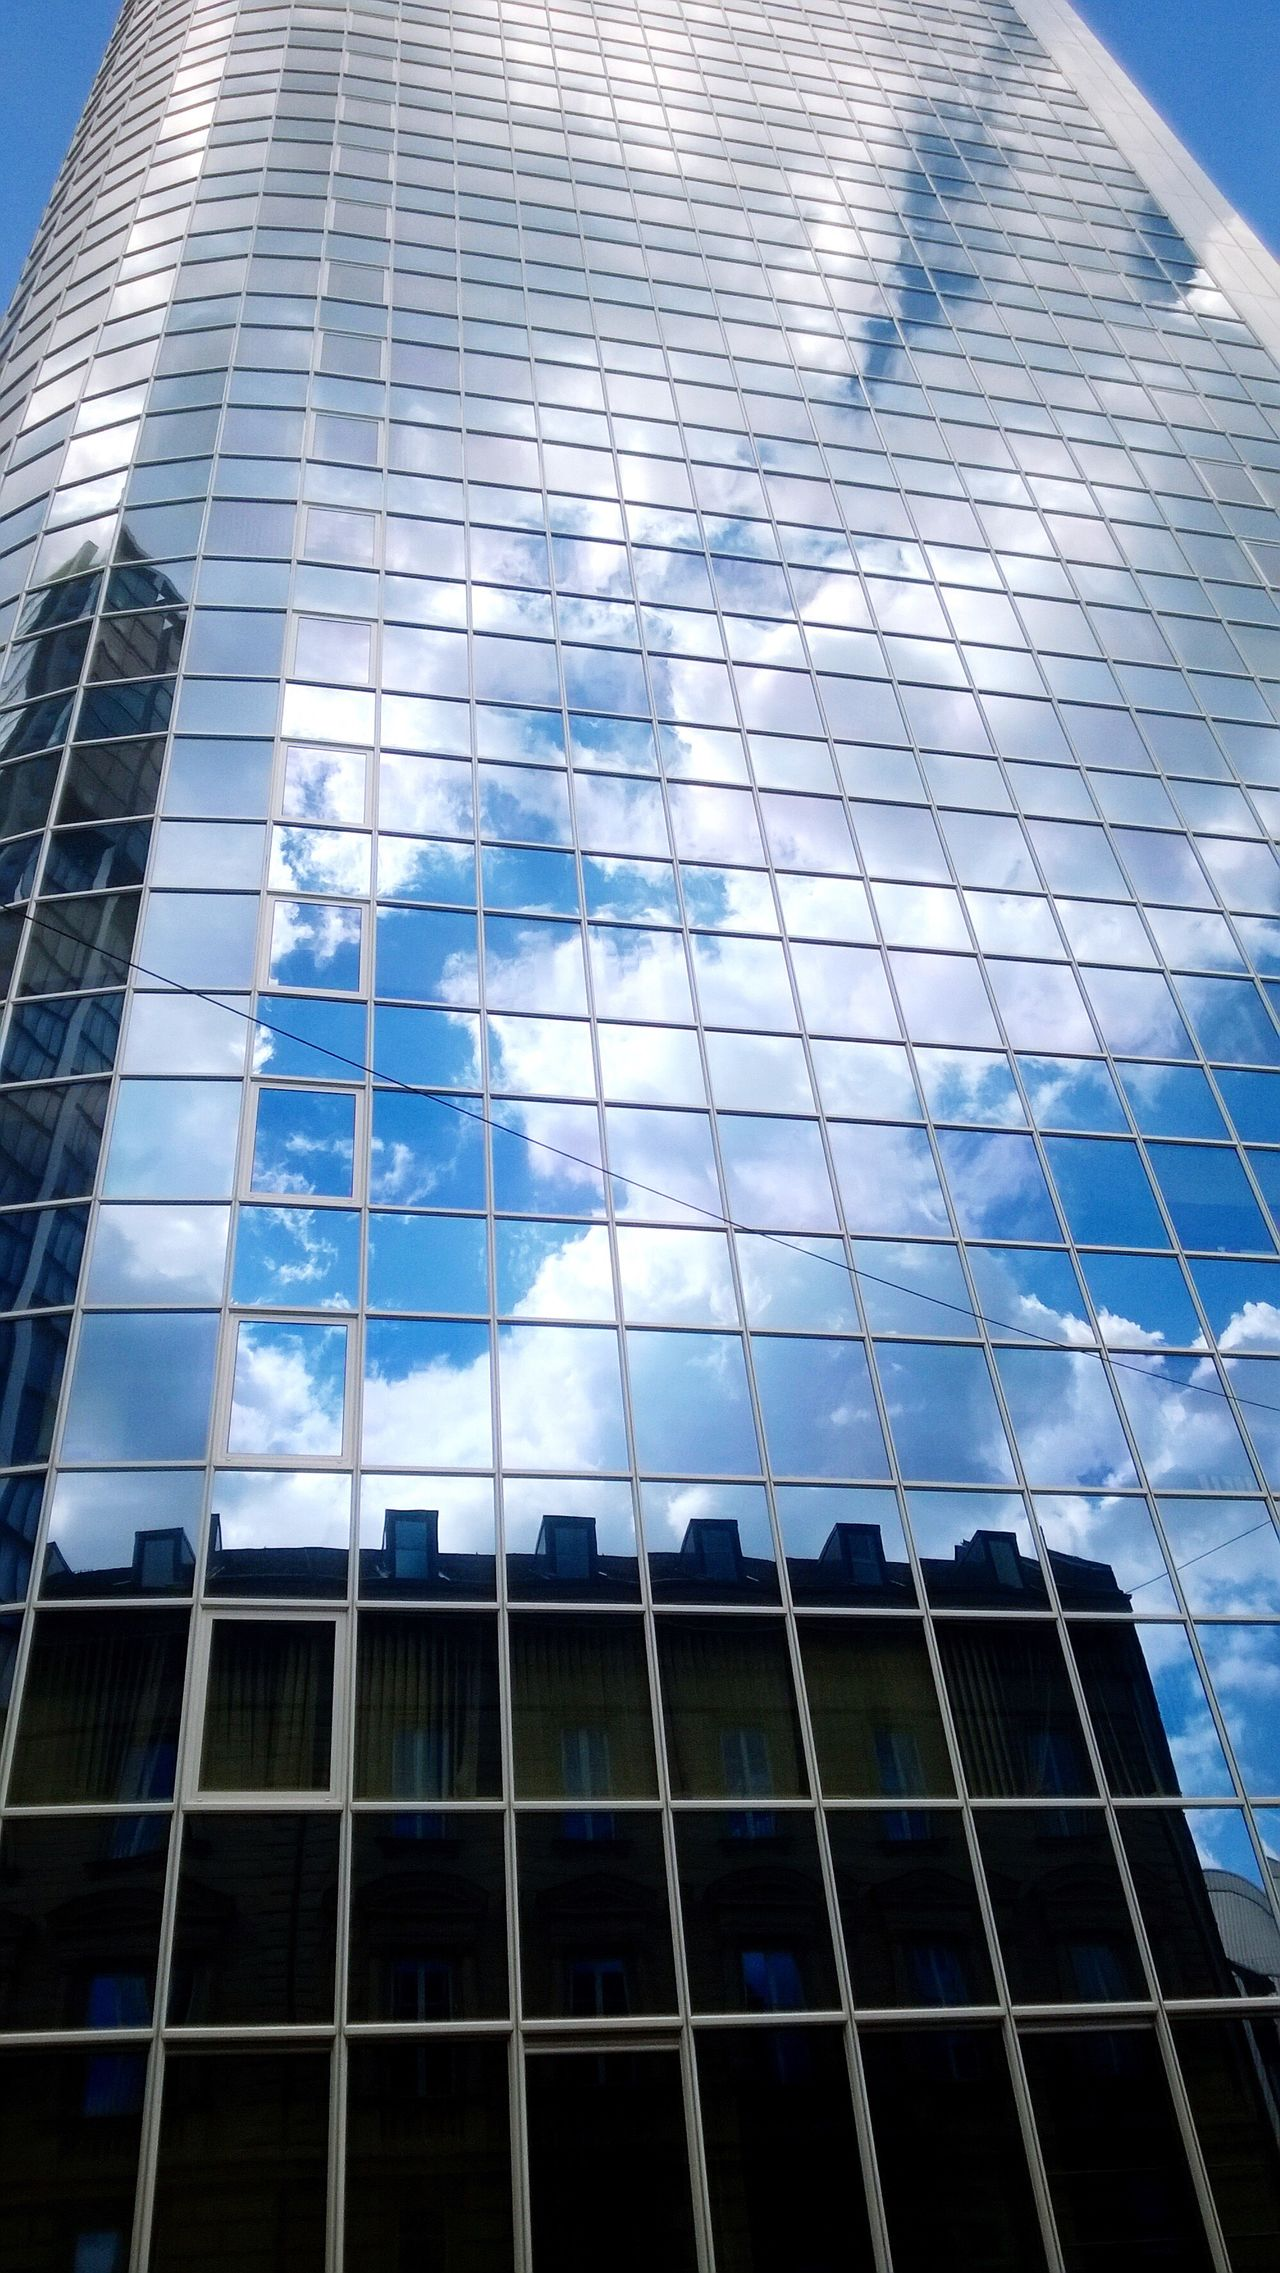 Architecture Glass - Material Building Exterior Modern Reflection Built Structure Window City Low Angle View Sky Blue Skyscraper No People Futuristic Outdoors Building Reflections Office Building Exterior Office Block Sunlight Cloud - Sky